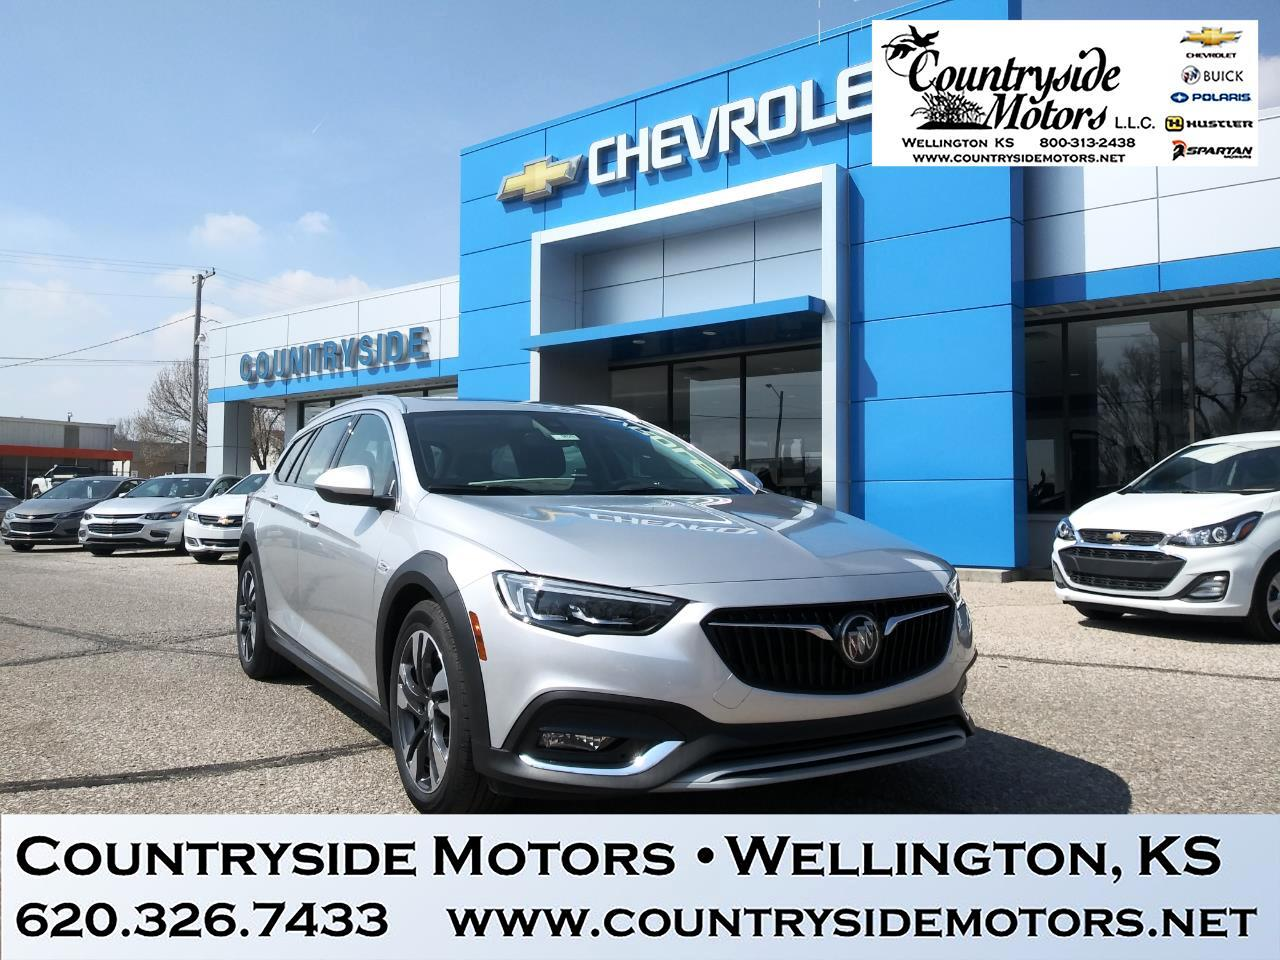 2019 Buick Regal TOURX HATCHBACK WAGON ESSENCE AWD